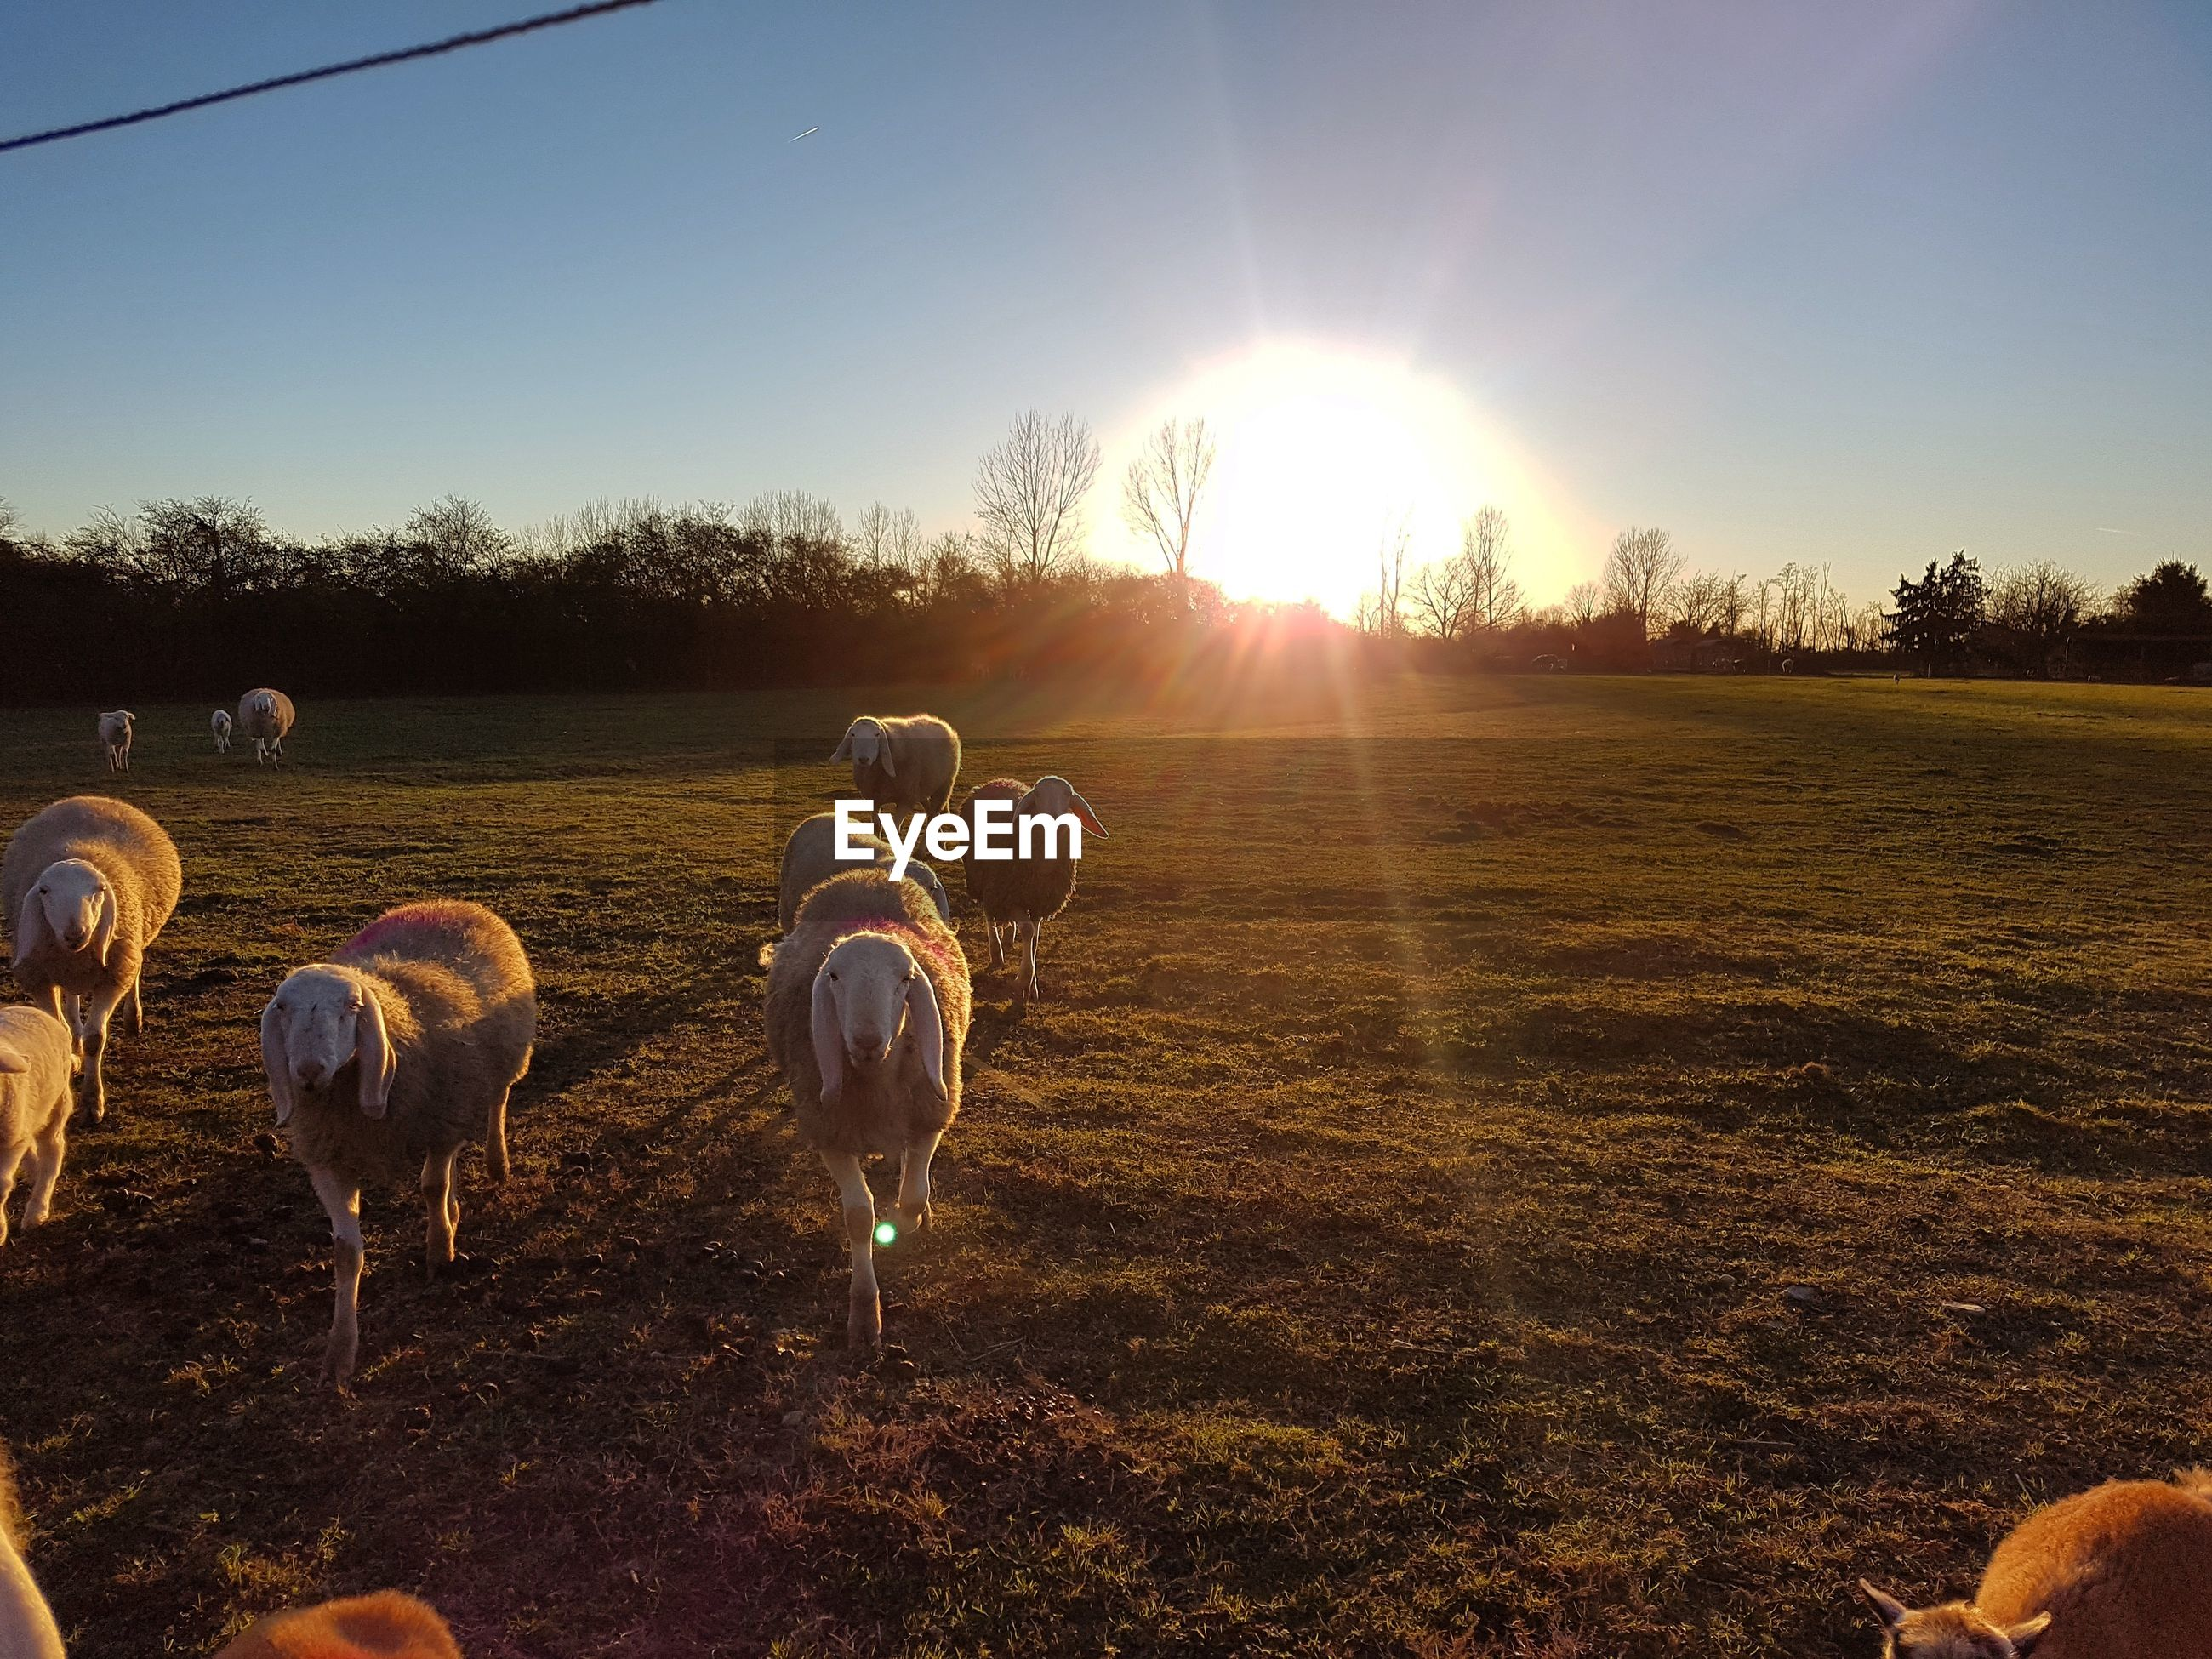 Flock of sheep on field against sky during sunset